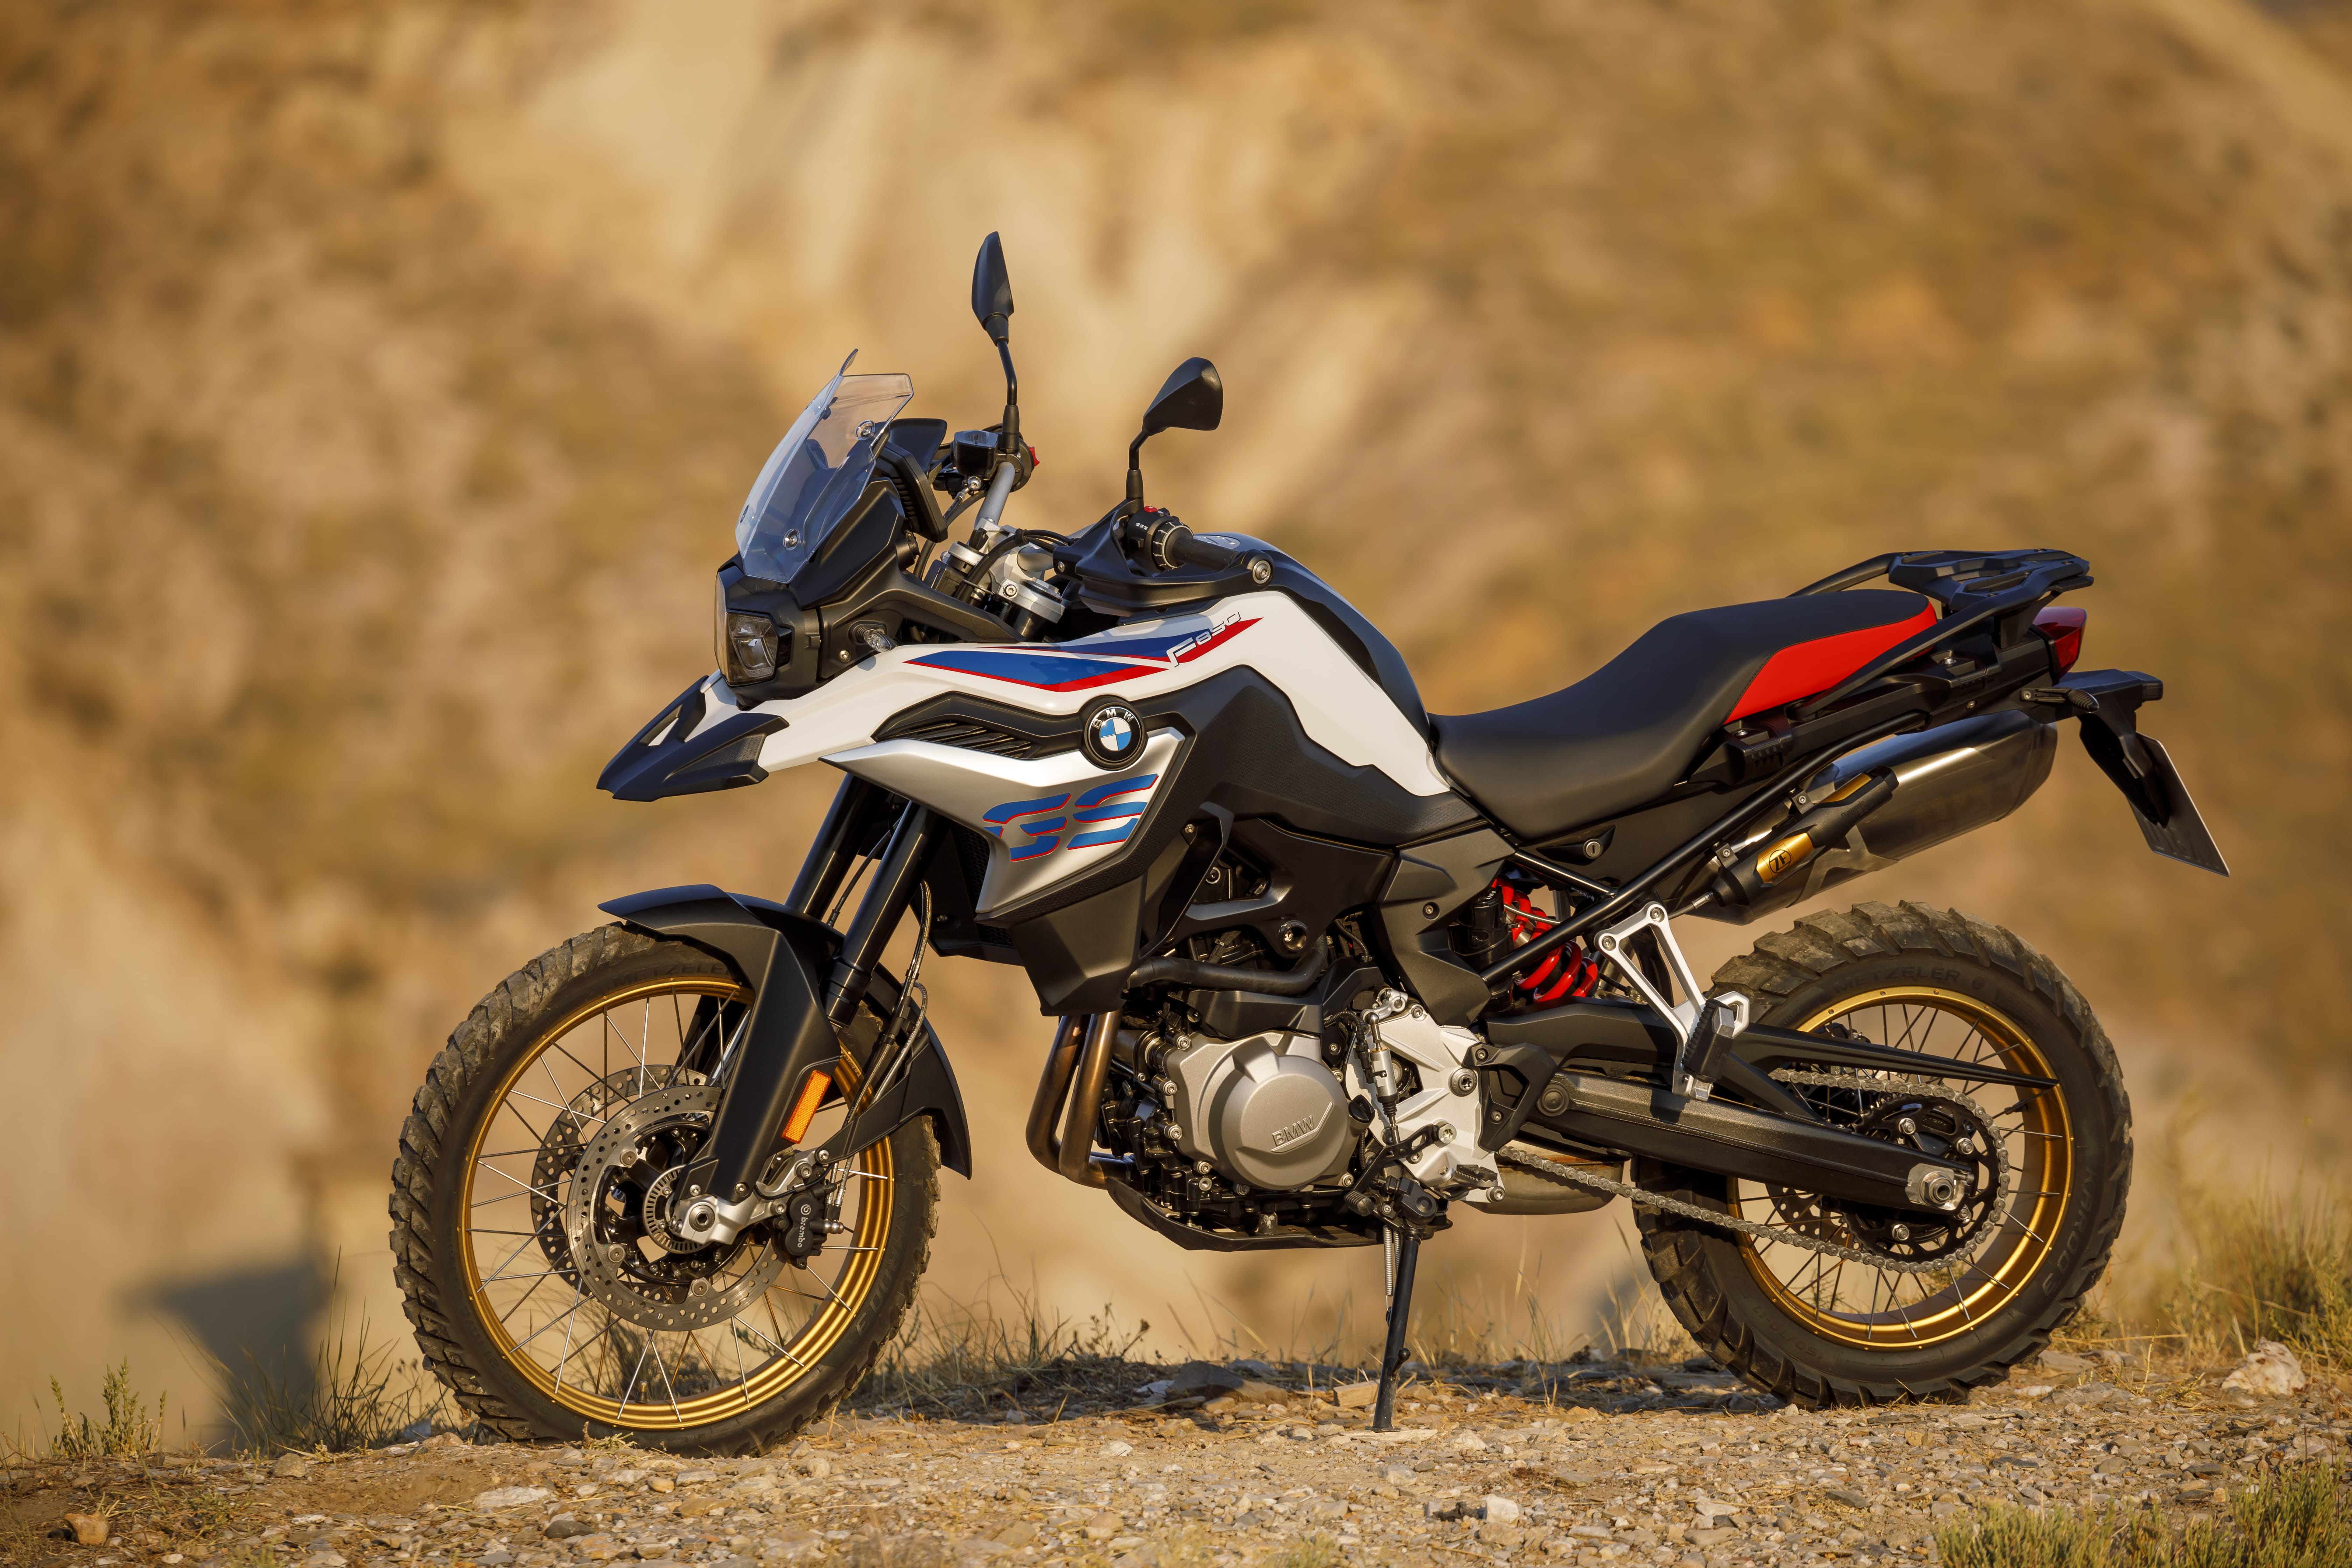 2018 BMW F750 GS and F850 GS